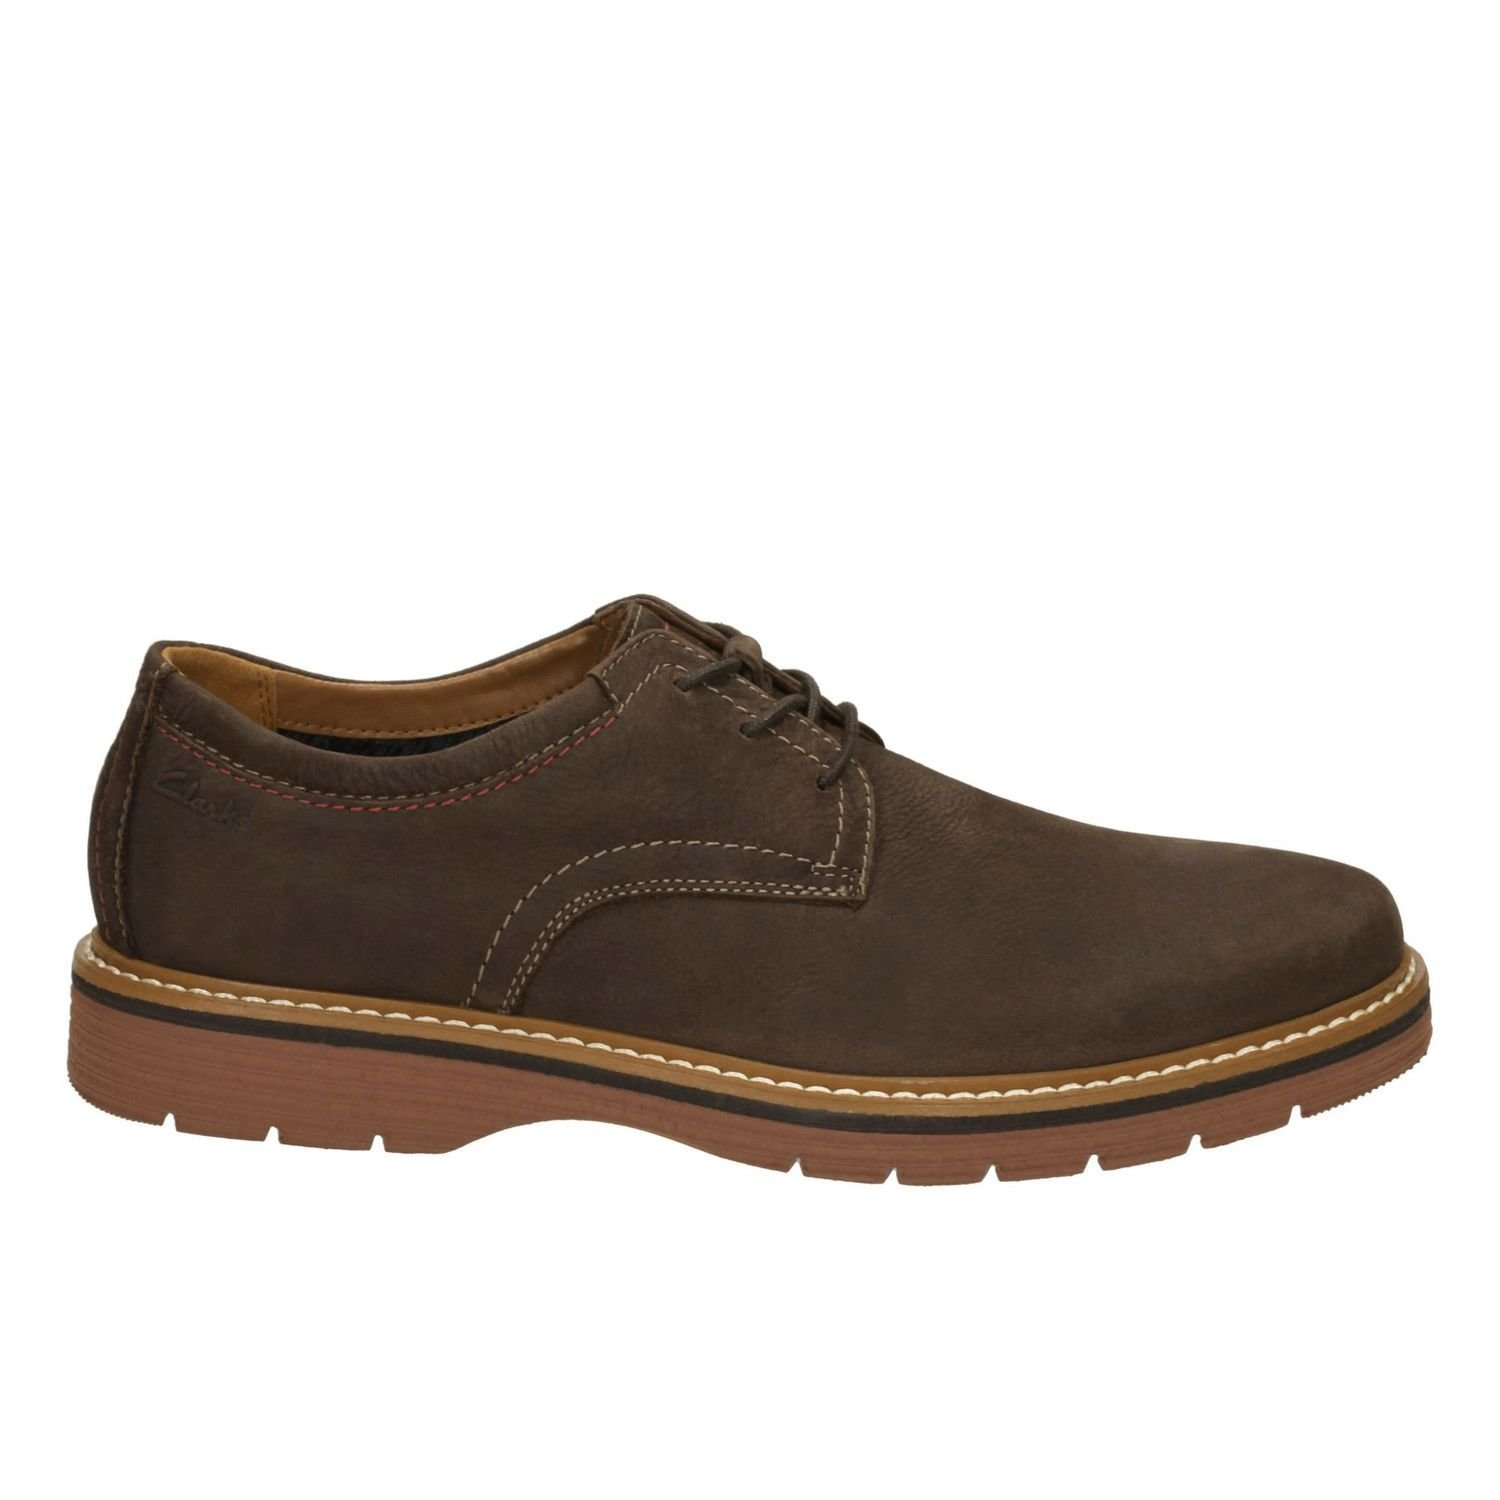 Zapatos Newkirk Plain Nobuck Marron Oscuro TN-2380235